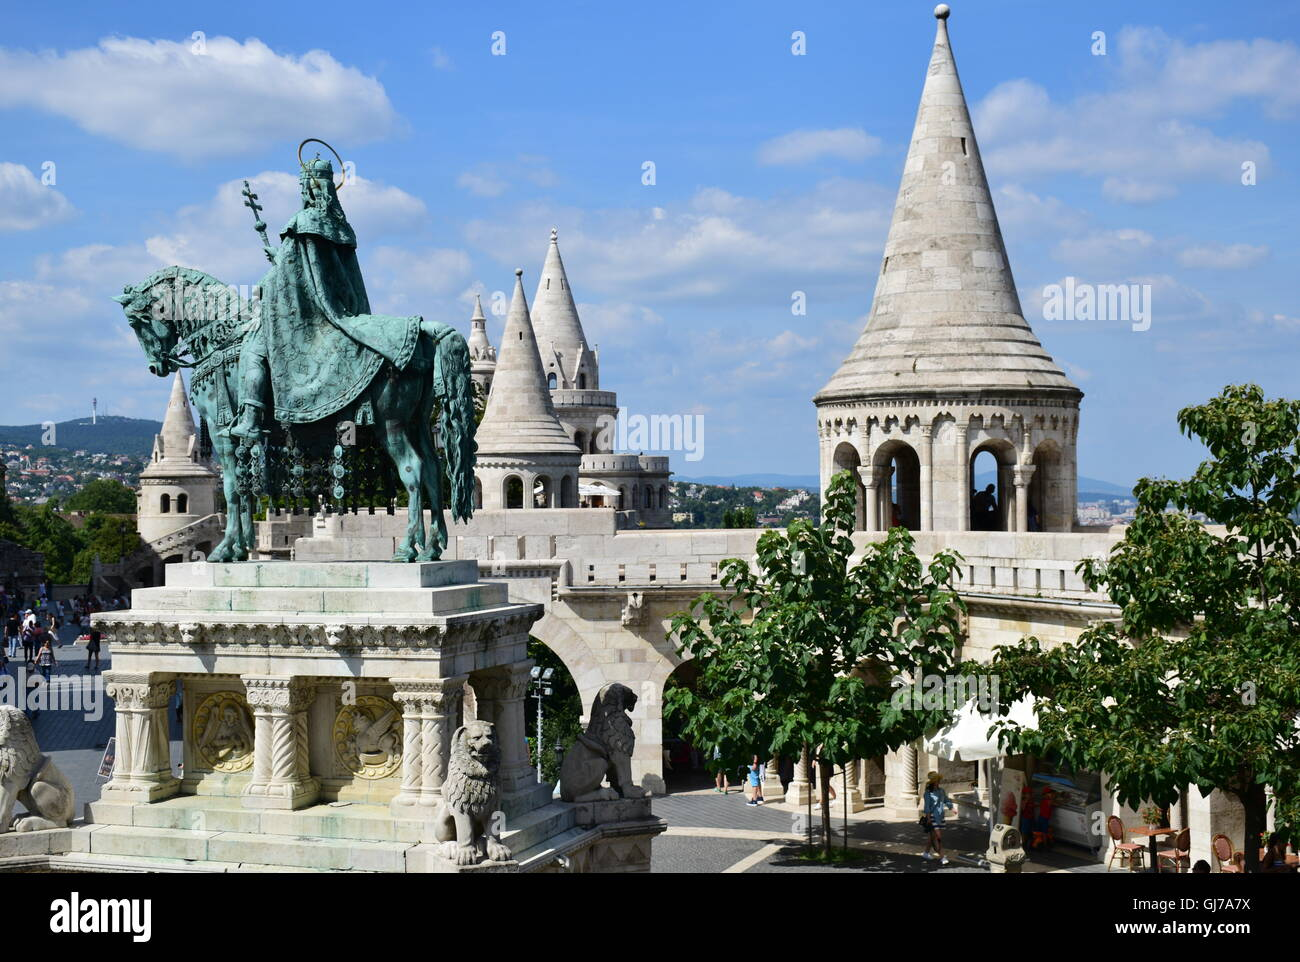 Fisherman's Bastion and statue of Saint Stephen in Budapest Hungary - Stock Image